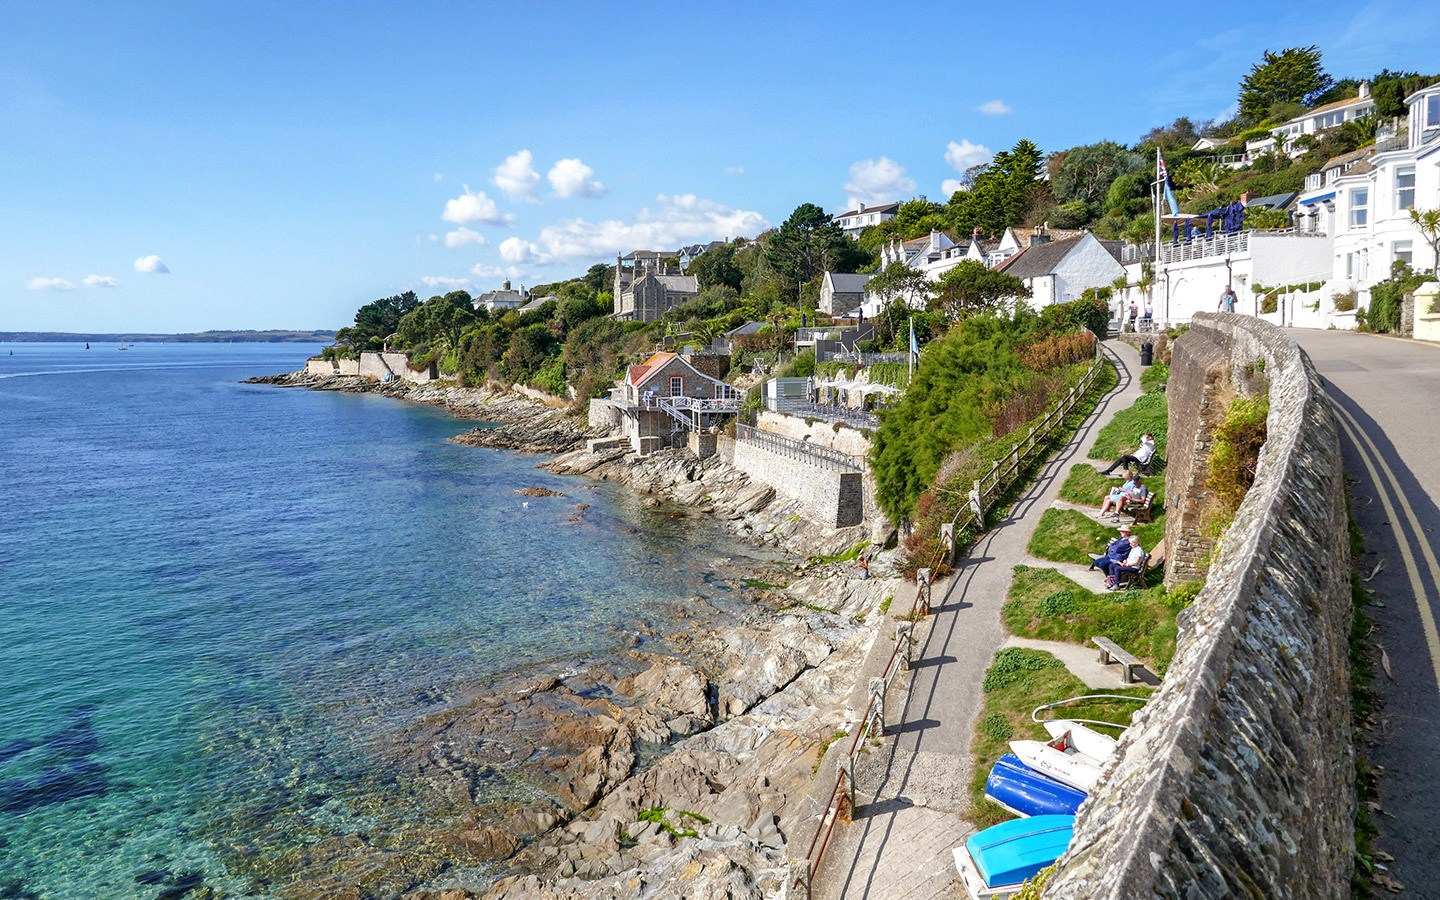 St Mawes near Falmouth in Cornwall